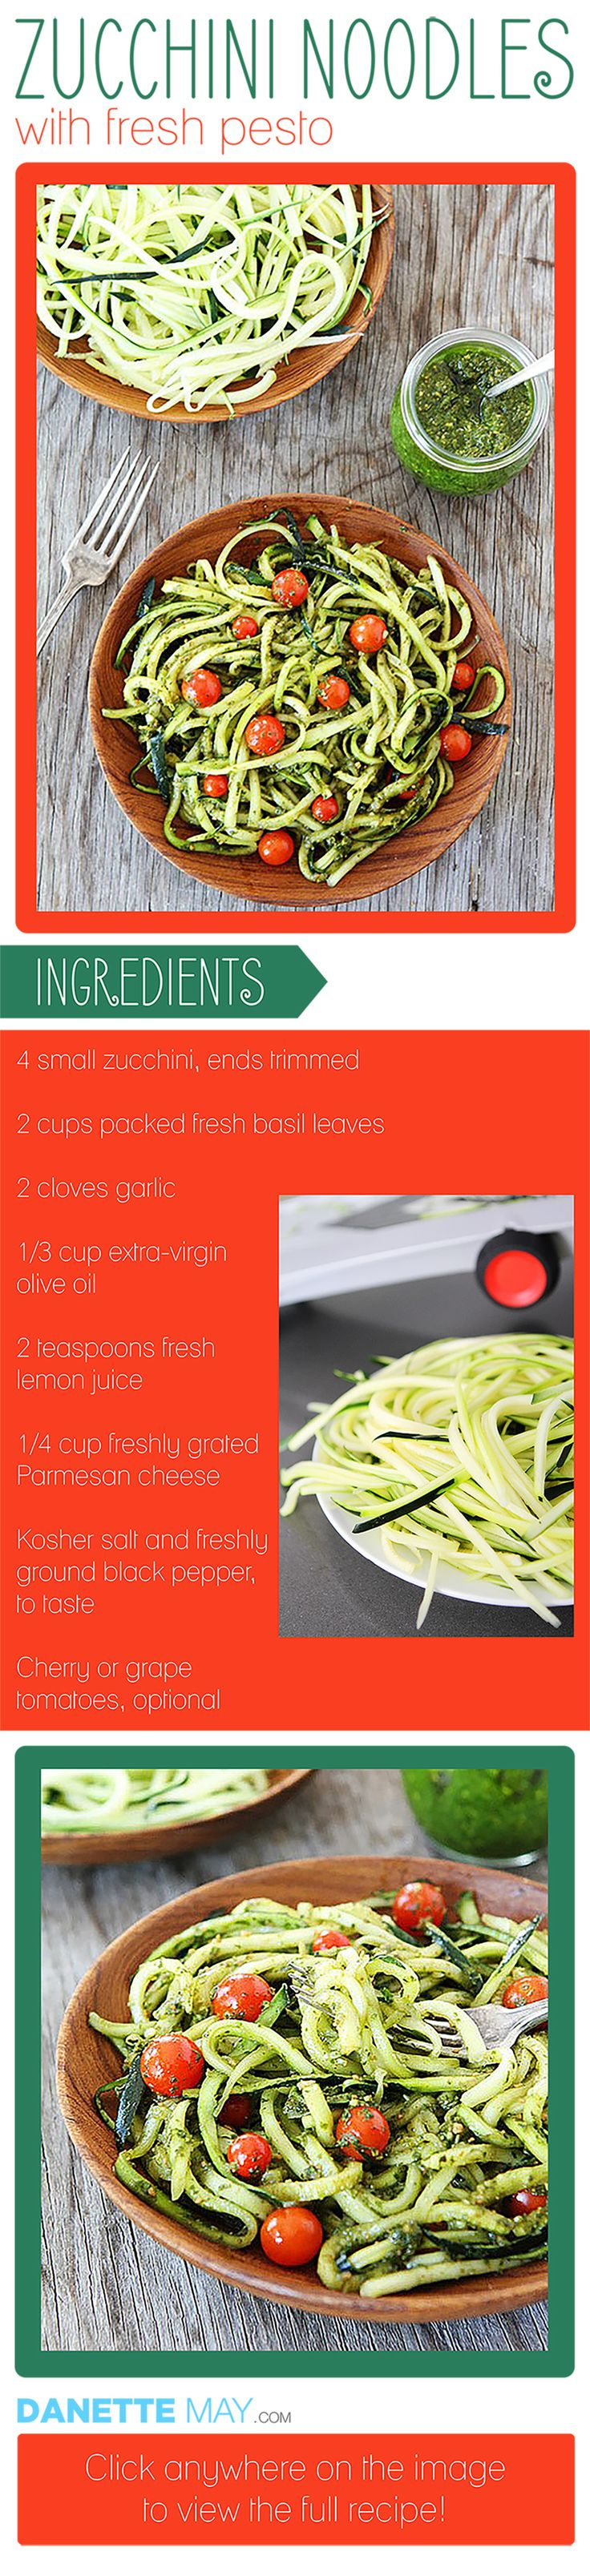 Alternative pasta recipe is infinitely healthier than traditional pasta. This easy recipe is sure to be a favorite for your weight loss plan.